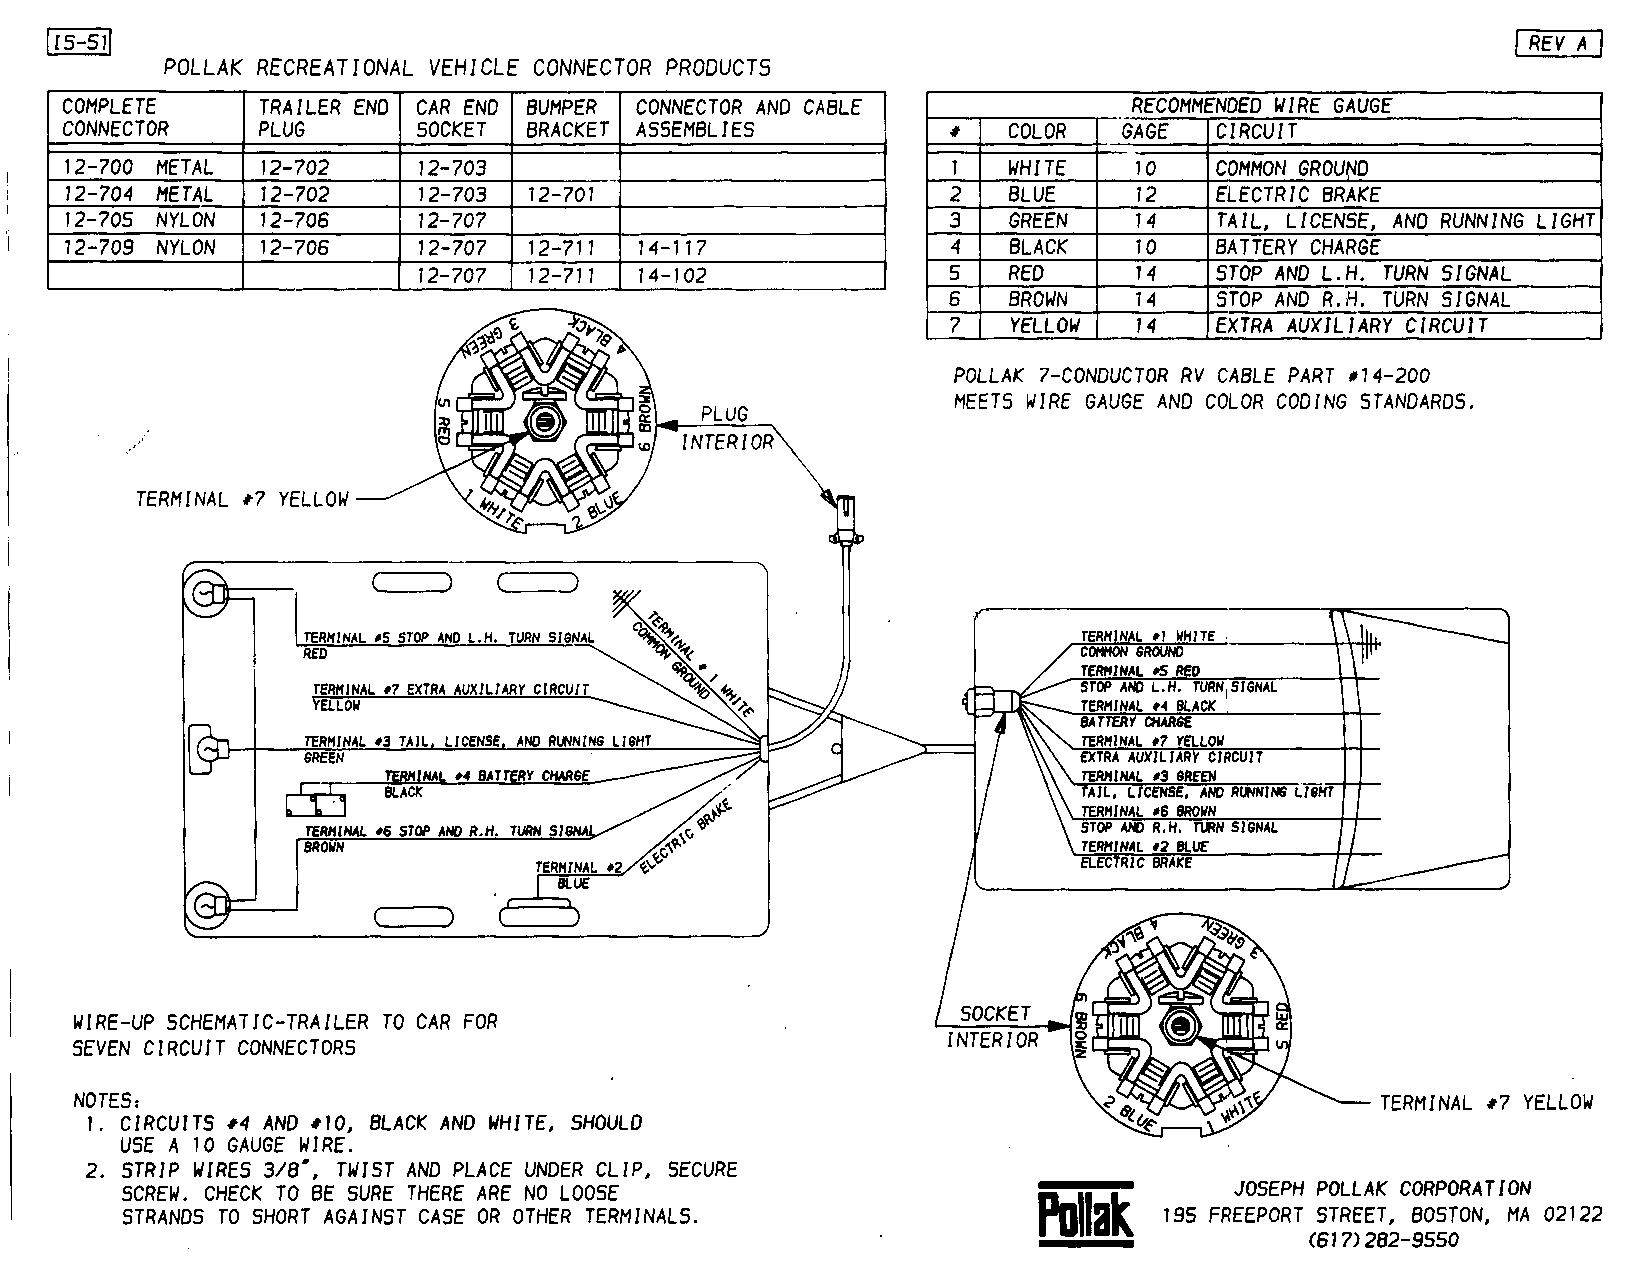 7 wire trailer connector diagram wiring diagram and schematic design 7 blade trailer connector diagram page 6 how to wire